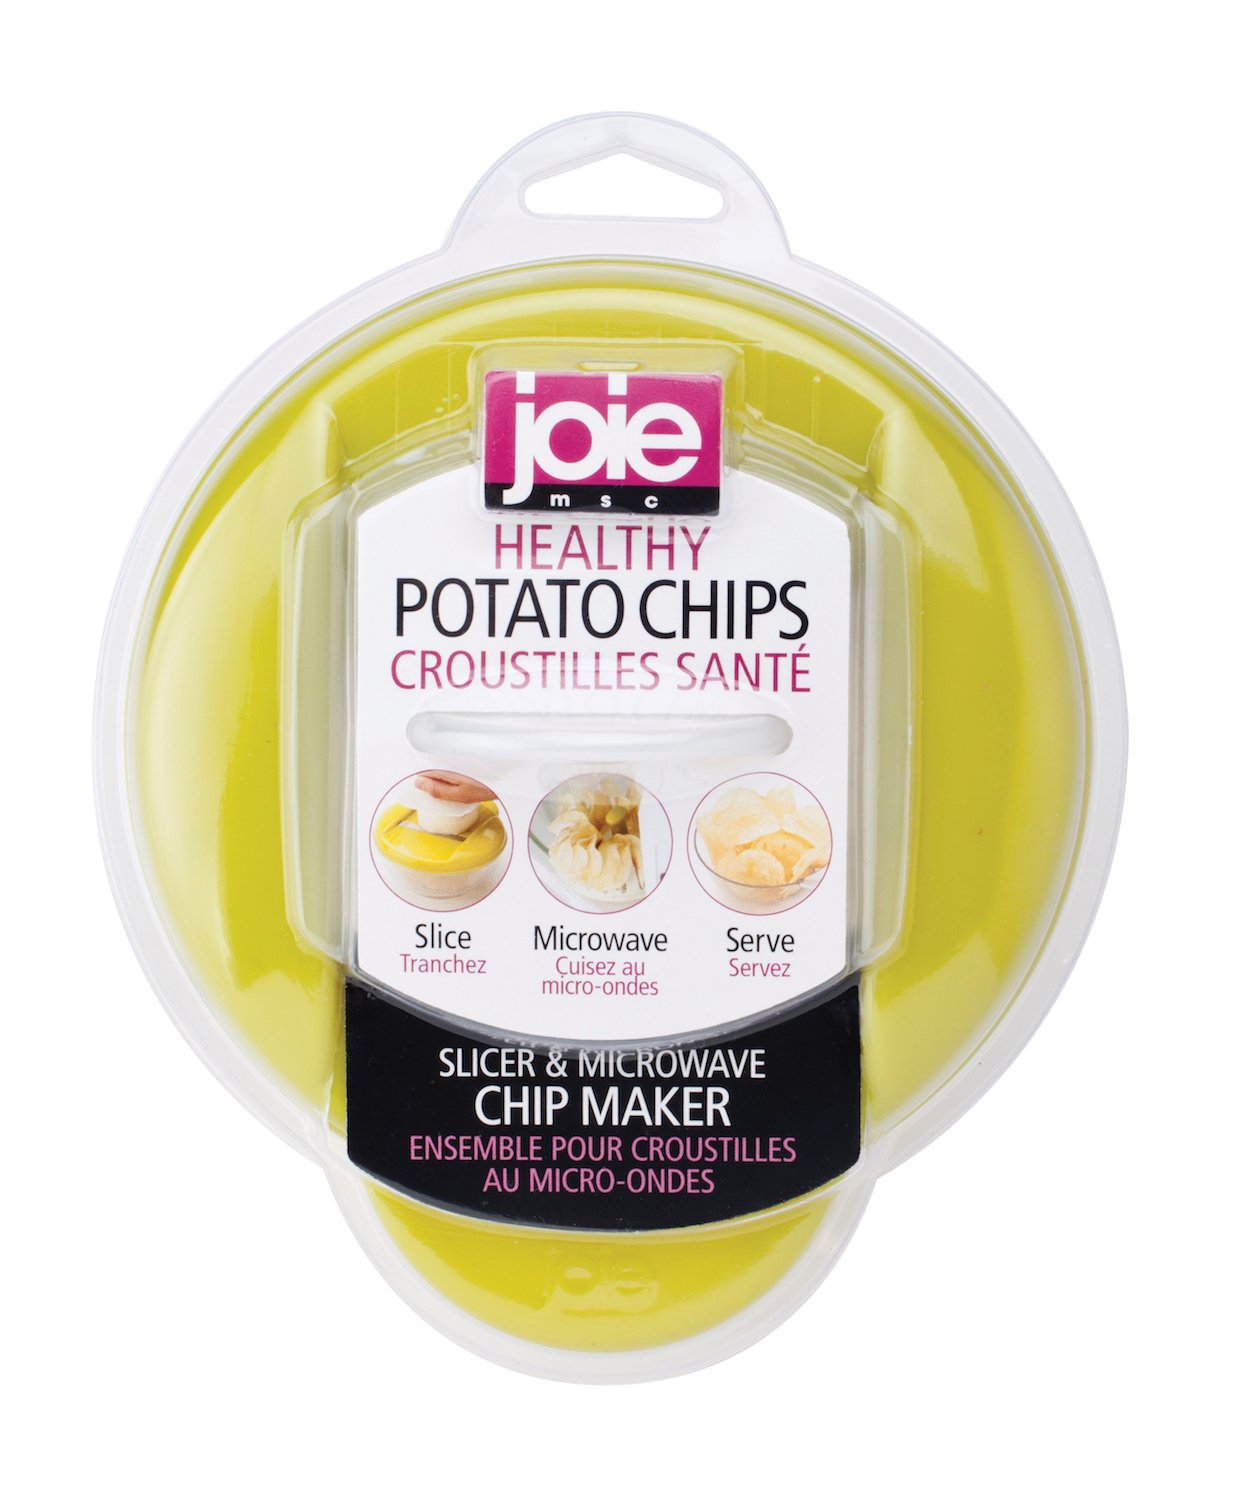 Joie Healthy Microwave Potato Chip Maker / Slicer / Cooker (Colors May Very) 44000 47486_rosso